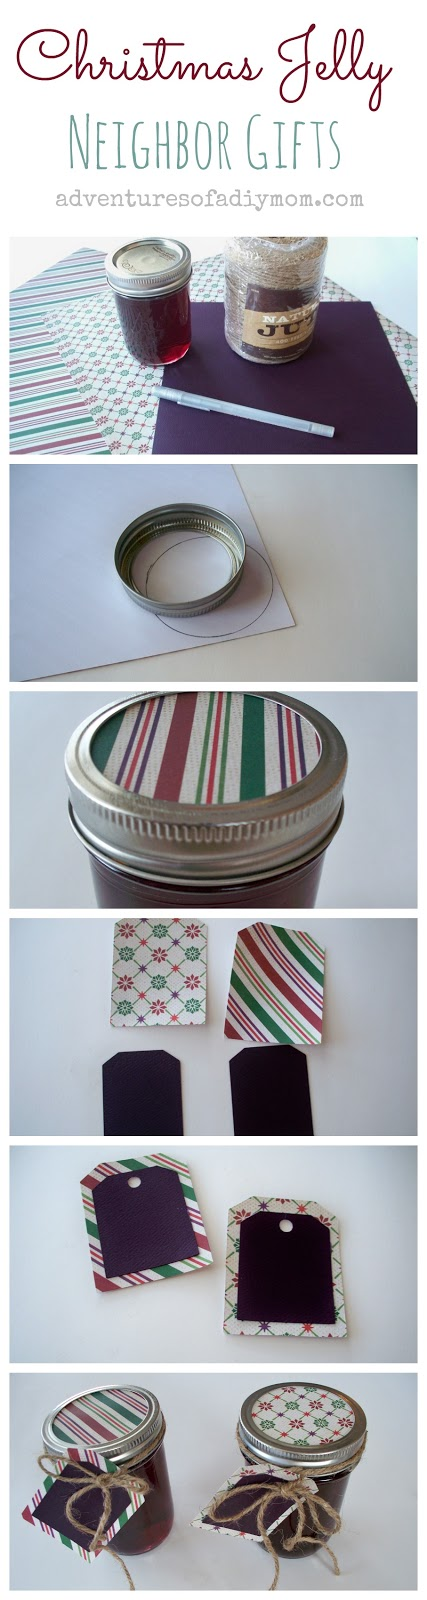 Christmas Jelly - Neighbor Gifts